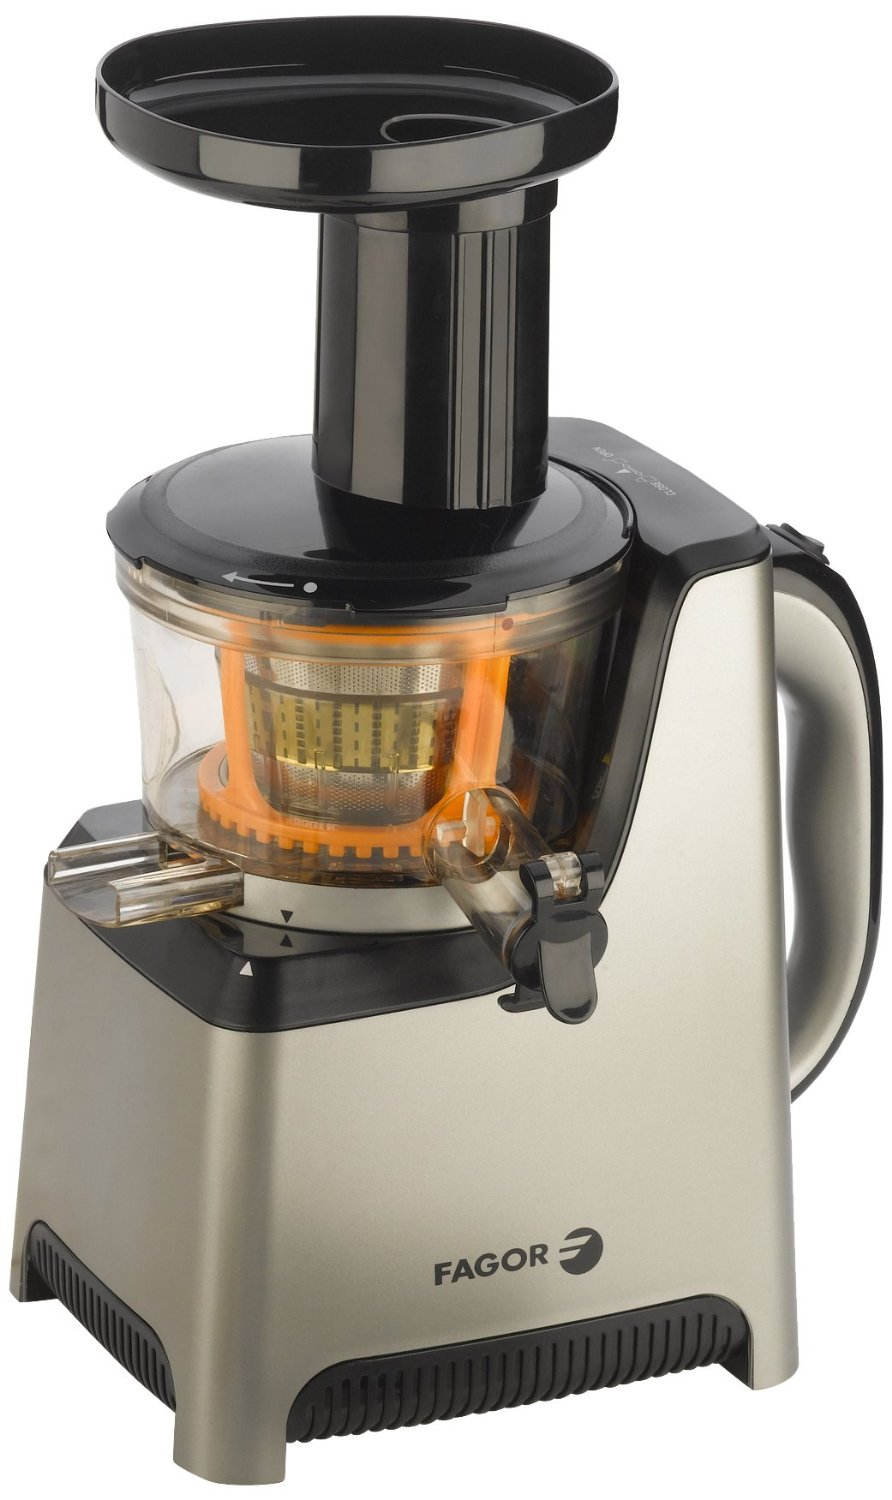 Slow Juicer Sorbetto : NDB-Fagor 670041910 Platino Plus Slow Juicer and Sorbet Maker